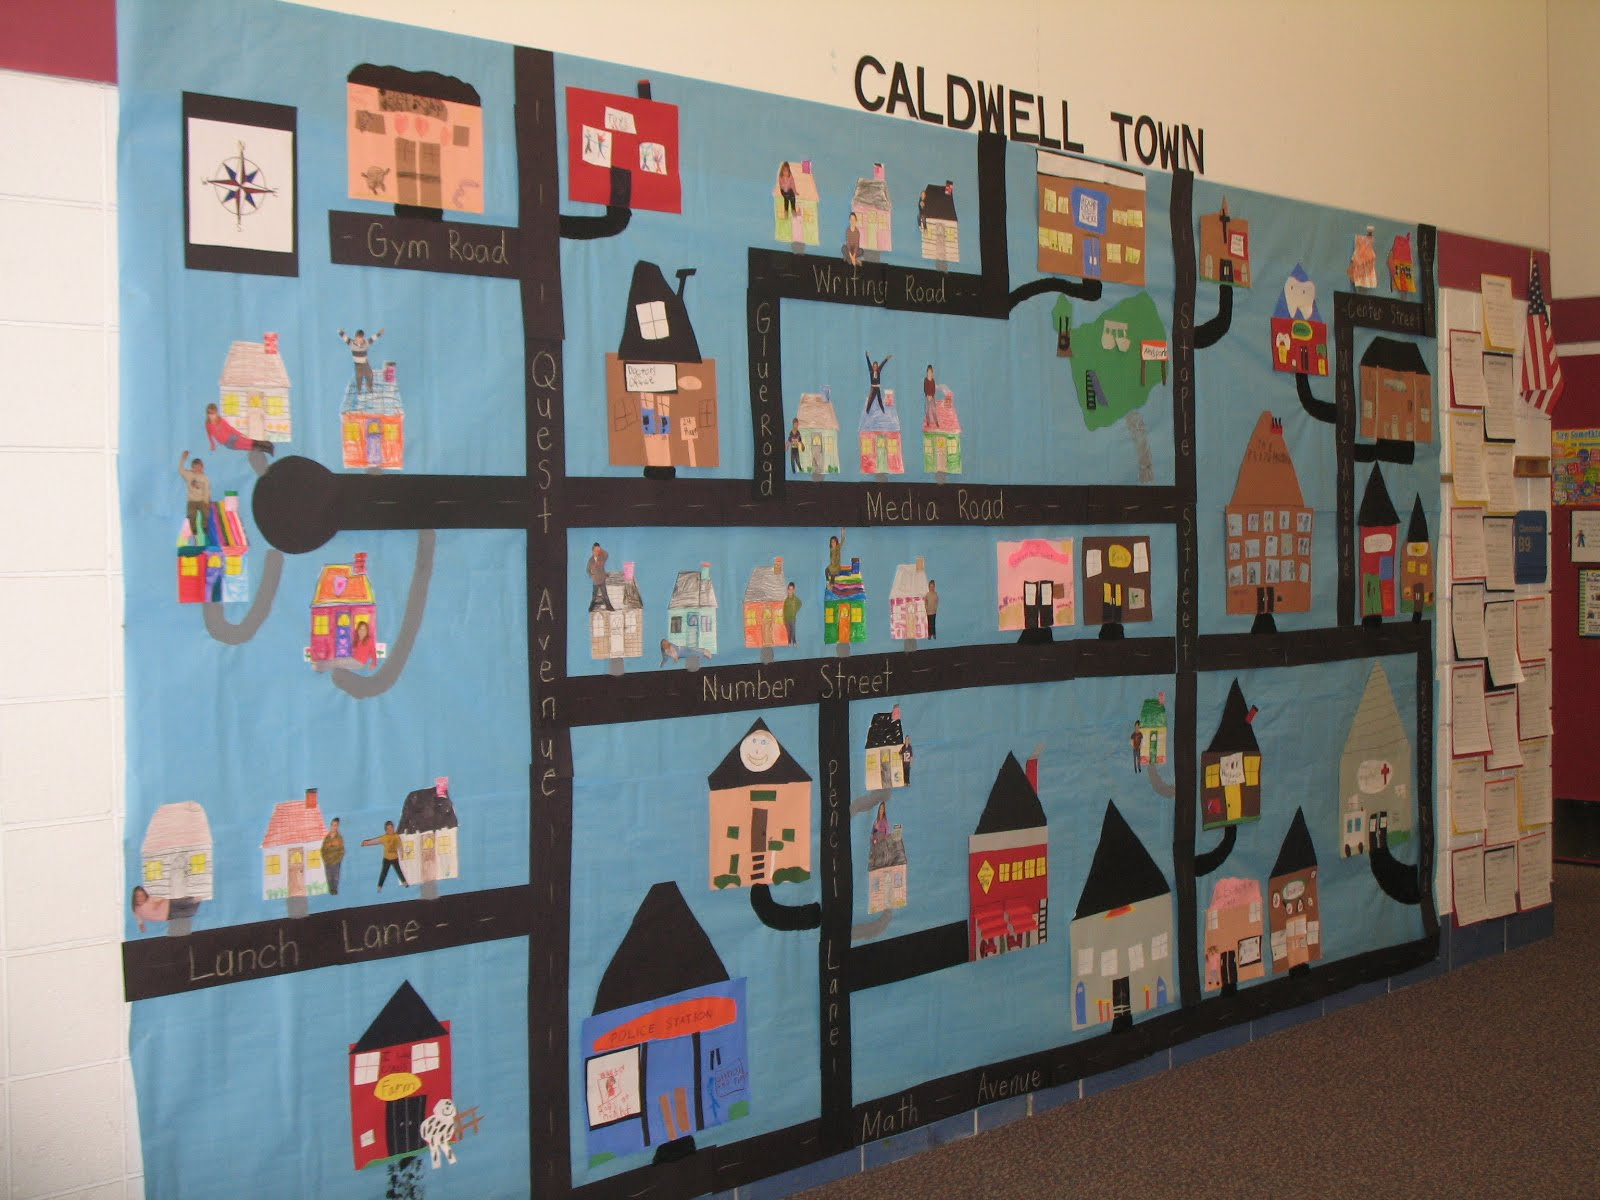 Caldwell Town   Map Project   Mrs  Caldwell s 1st Grade Class Caldwell Town   Map Project